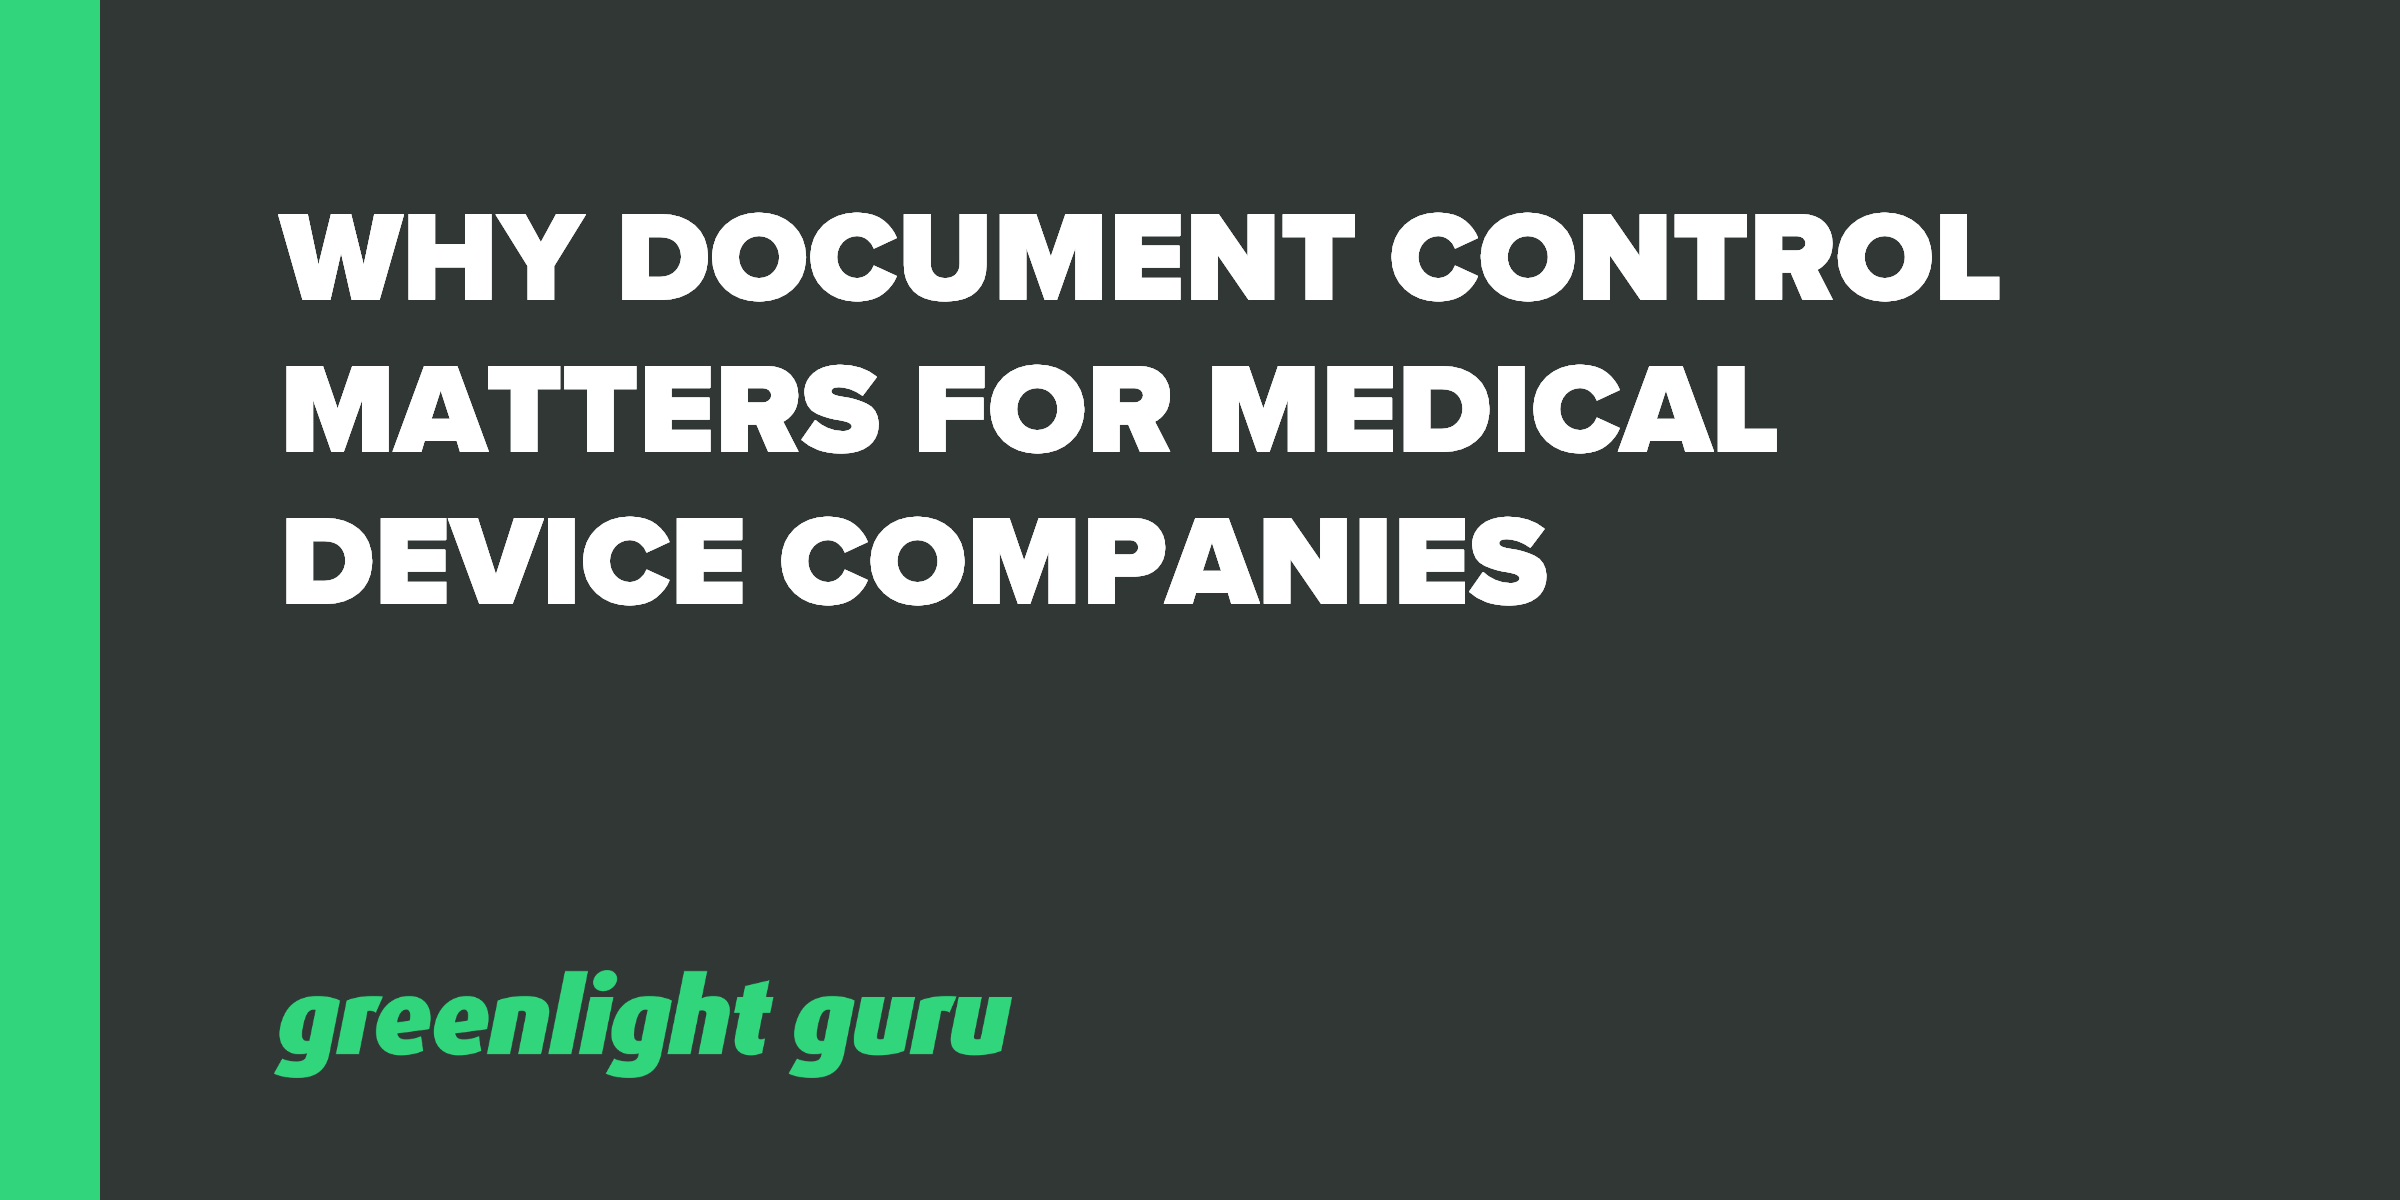 Why Document Control Matters to Medical Device Companies